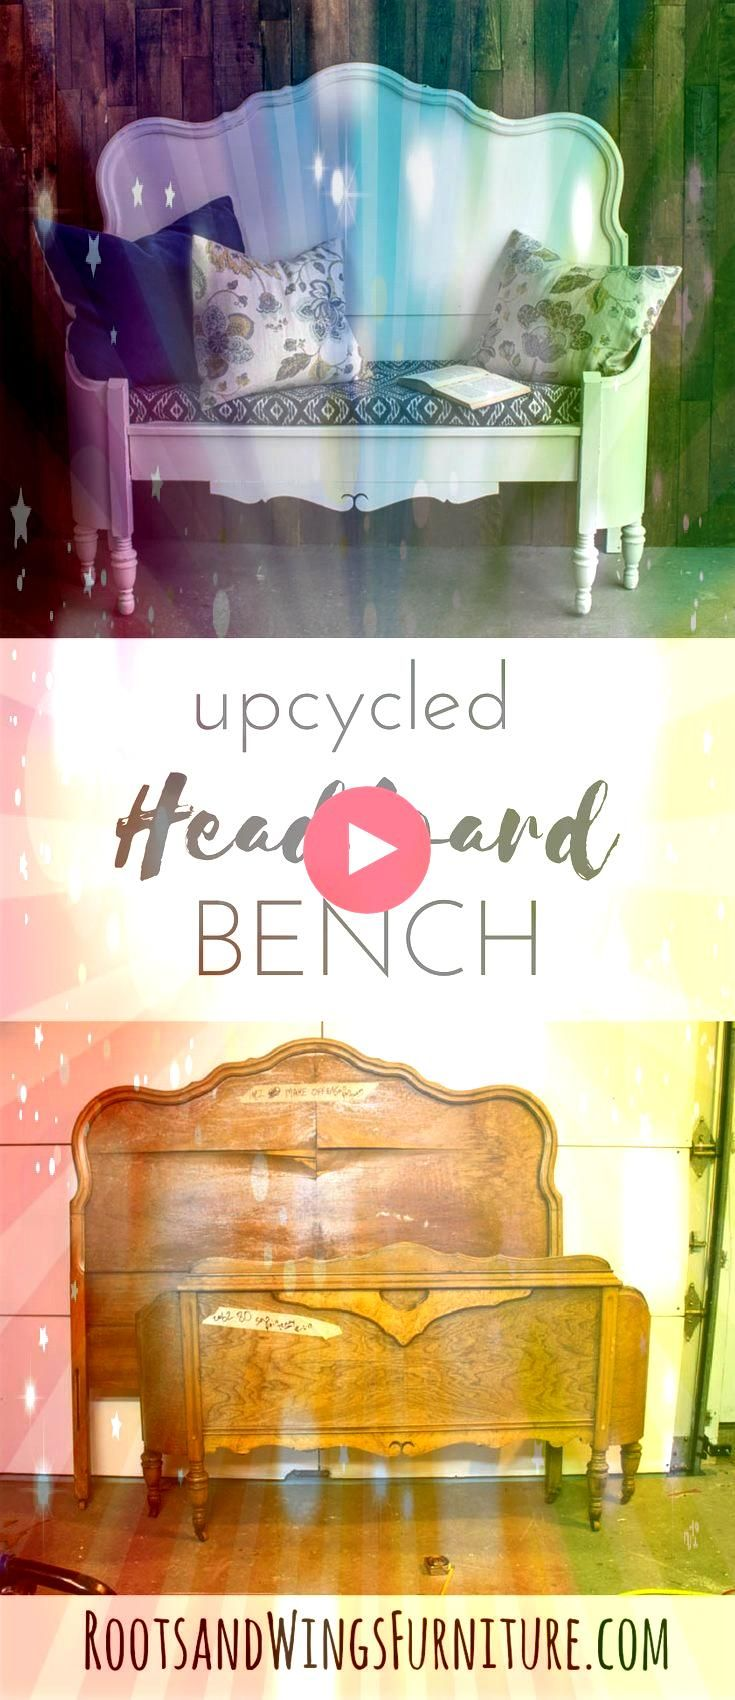 Headboard Bench  Roots Learn how to make a headboard bench Repurposing an old headboard View the tutorial hereLearn how to make a headboard bench Repurposing an old headb...